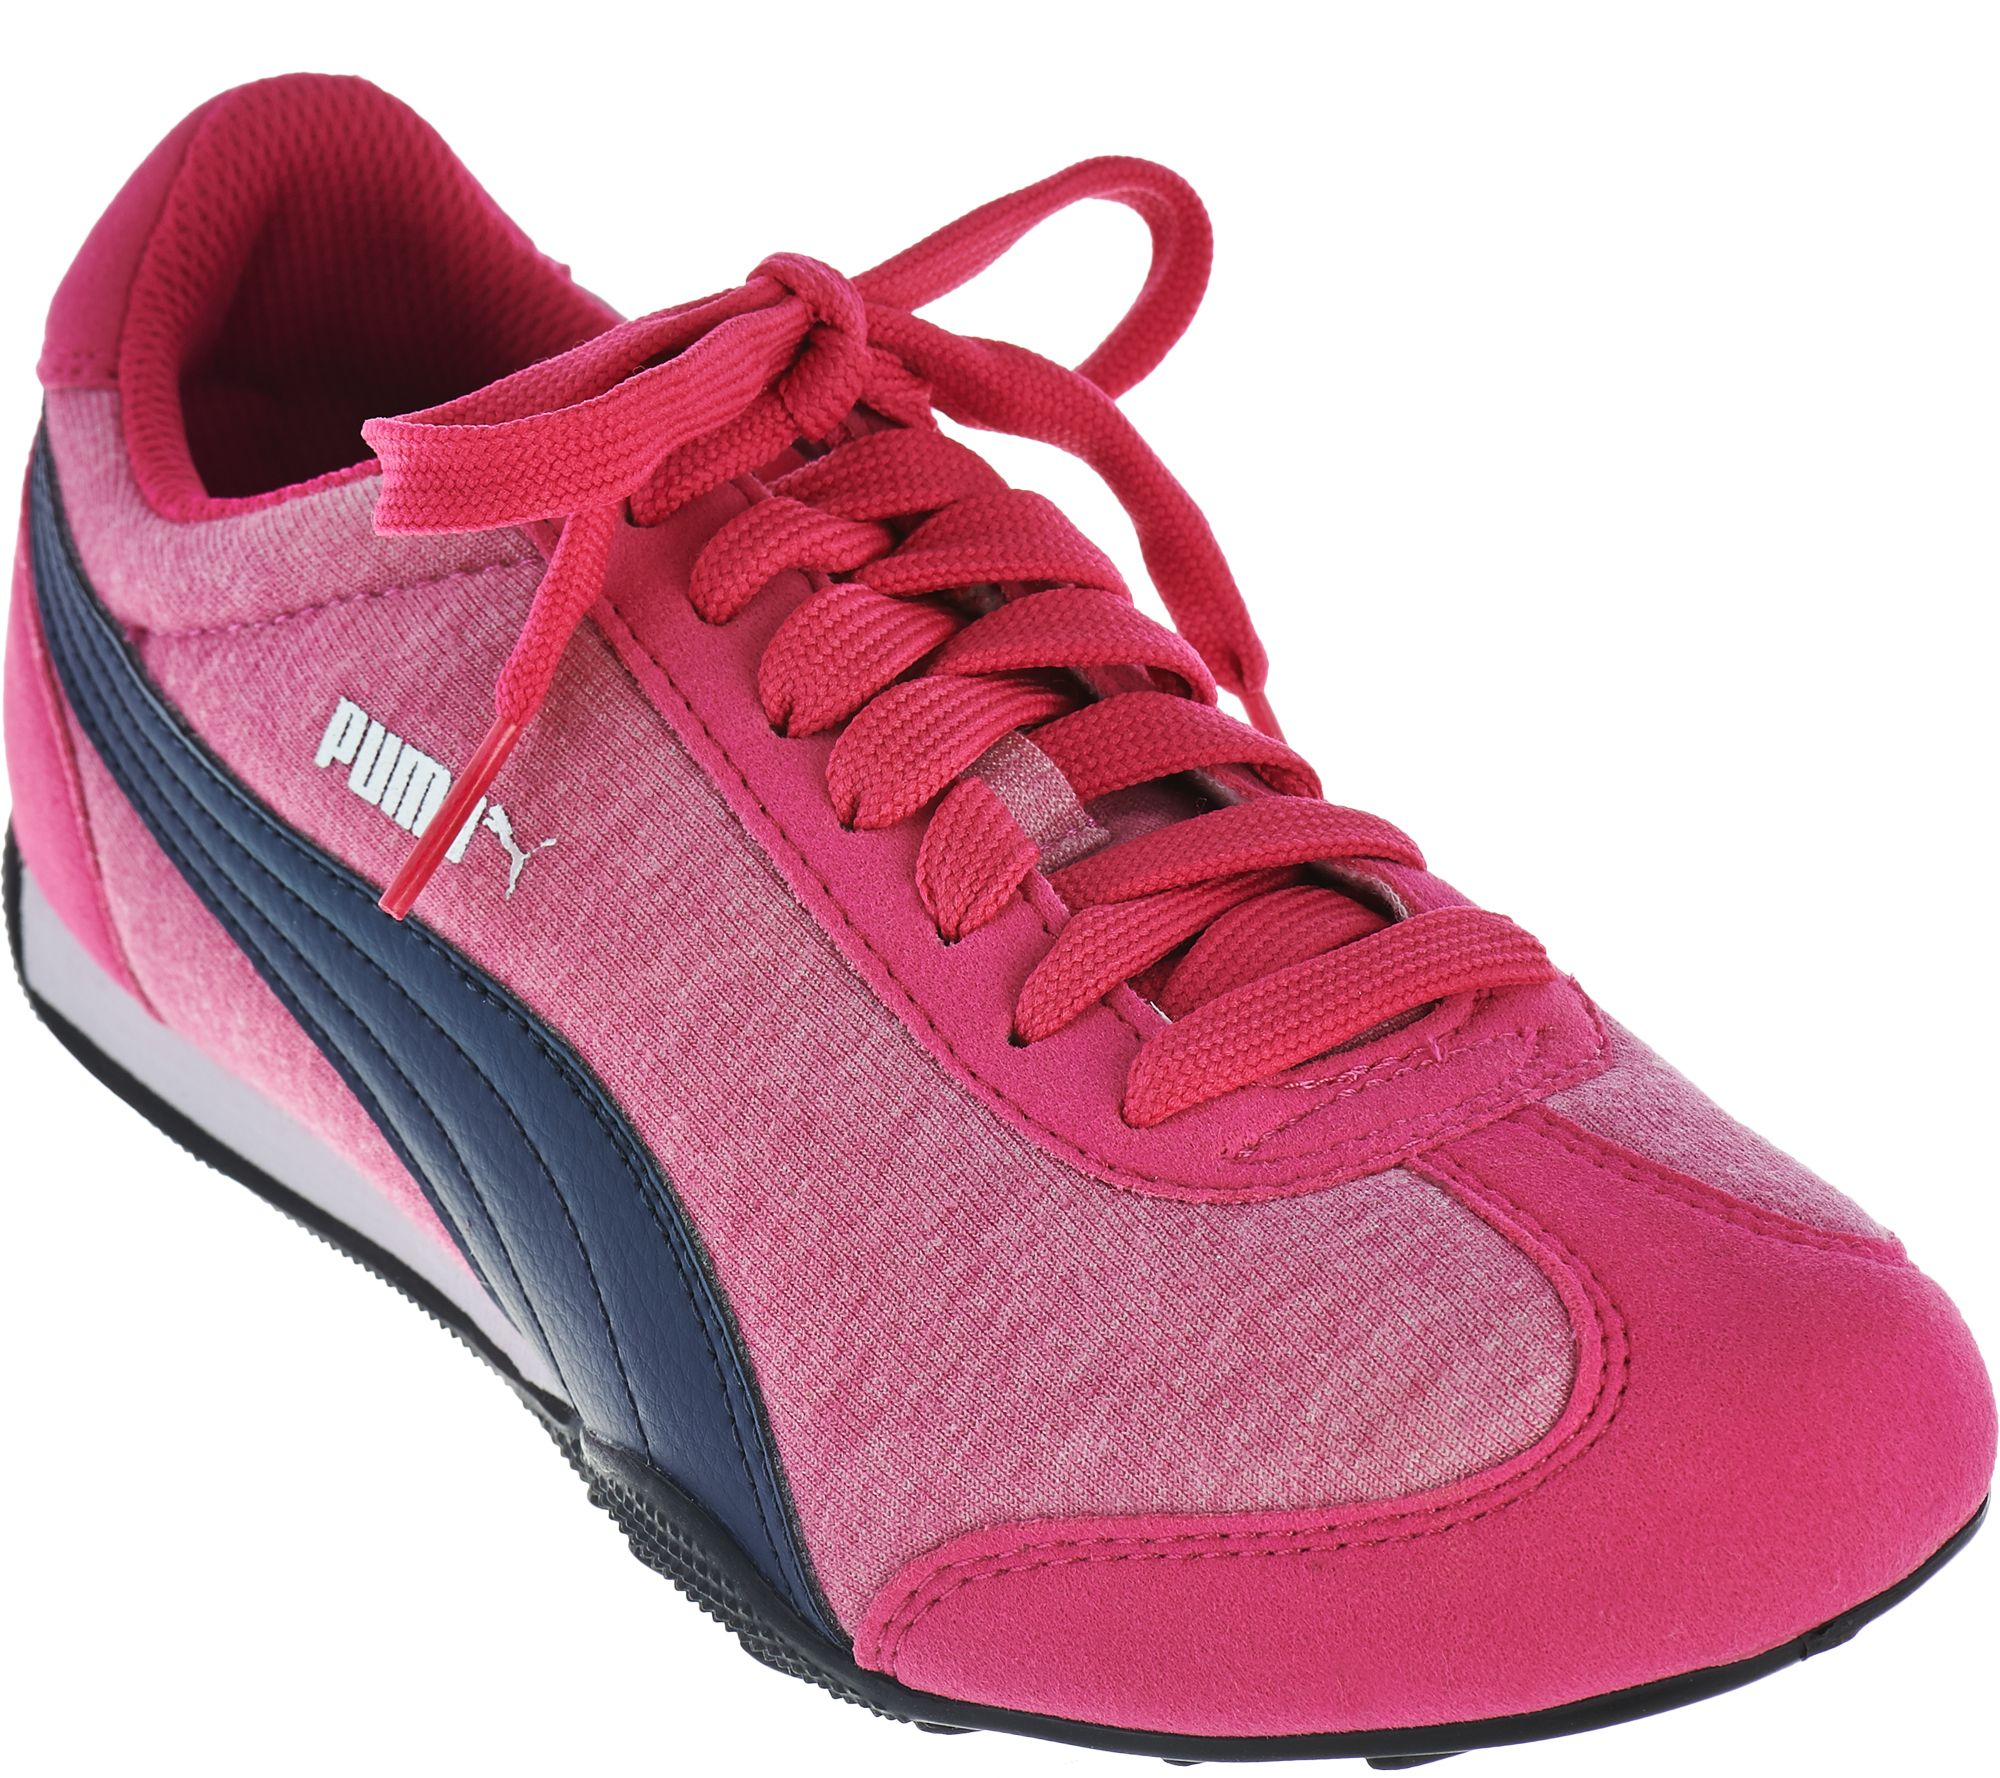 PUMA Jersey Knit Lace-Up Sneakers - 76 Runner Fun - Page 1 — QVC.com 9be12d3fa